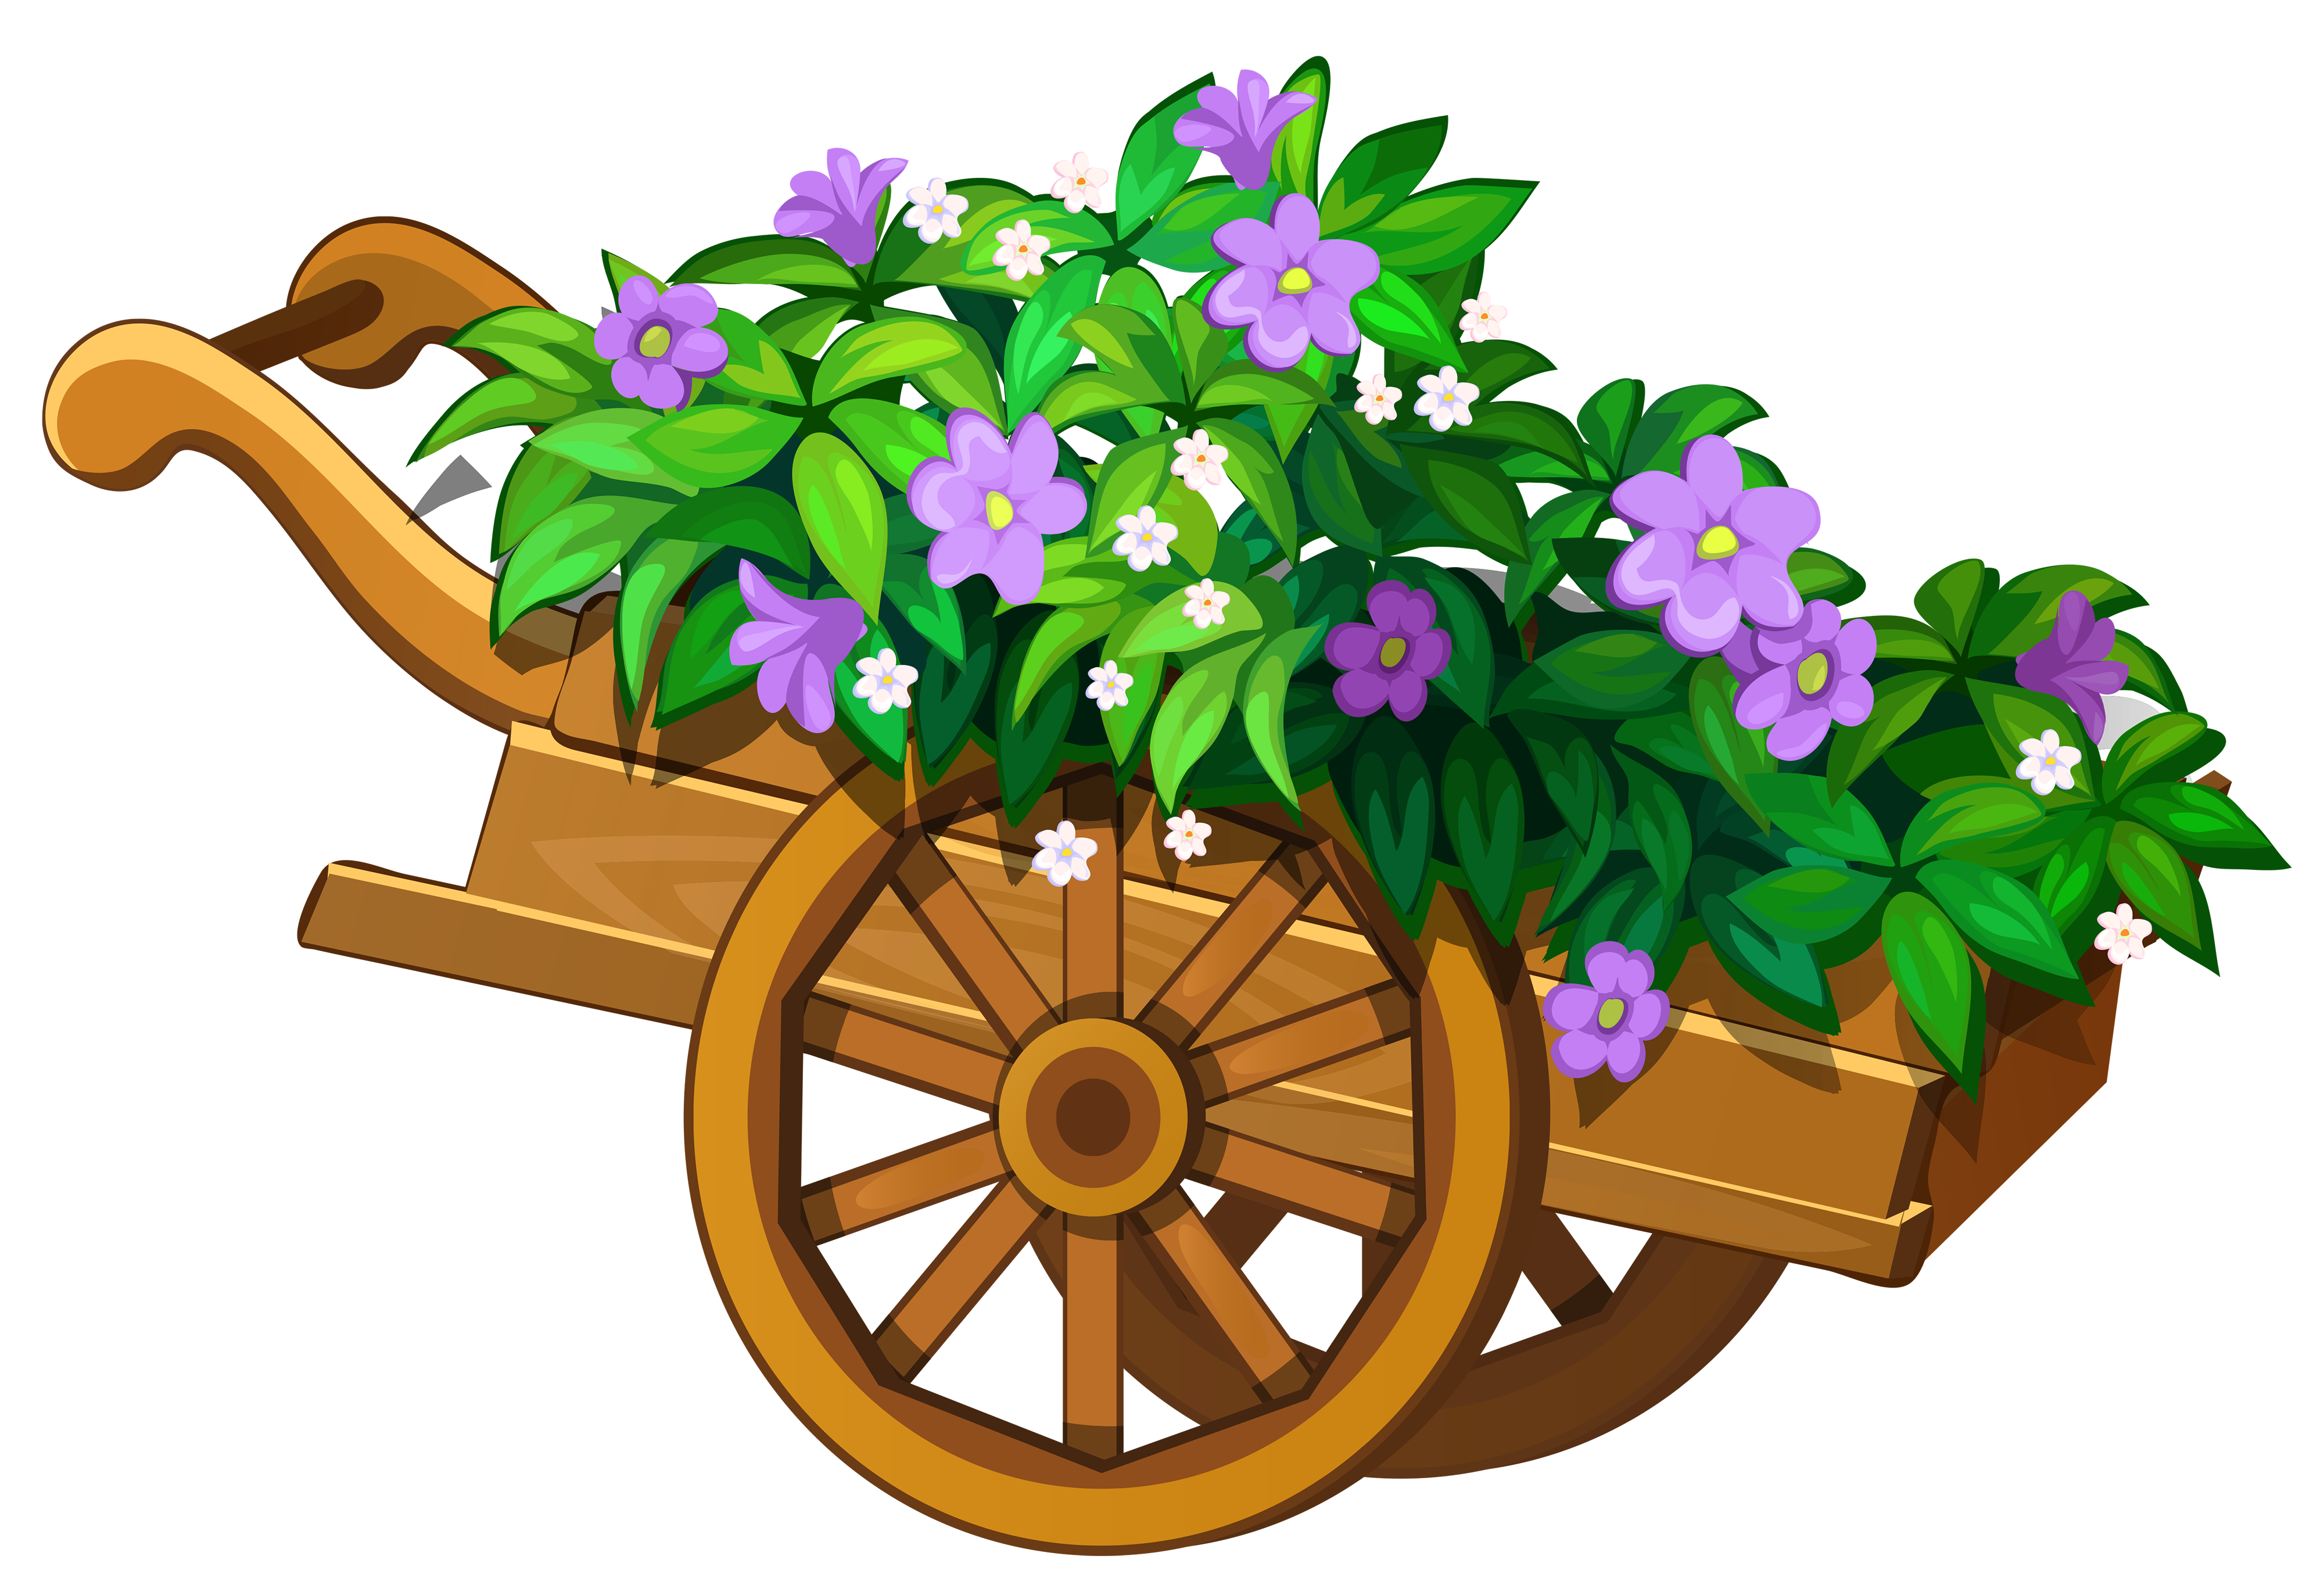 Wooden Garden Wheelbarrow With Flowers PNG Clipart The, Clip.